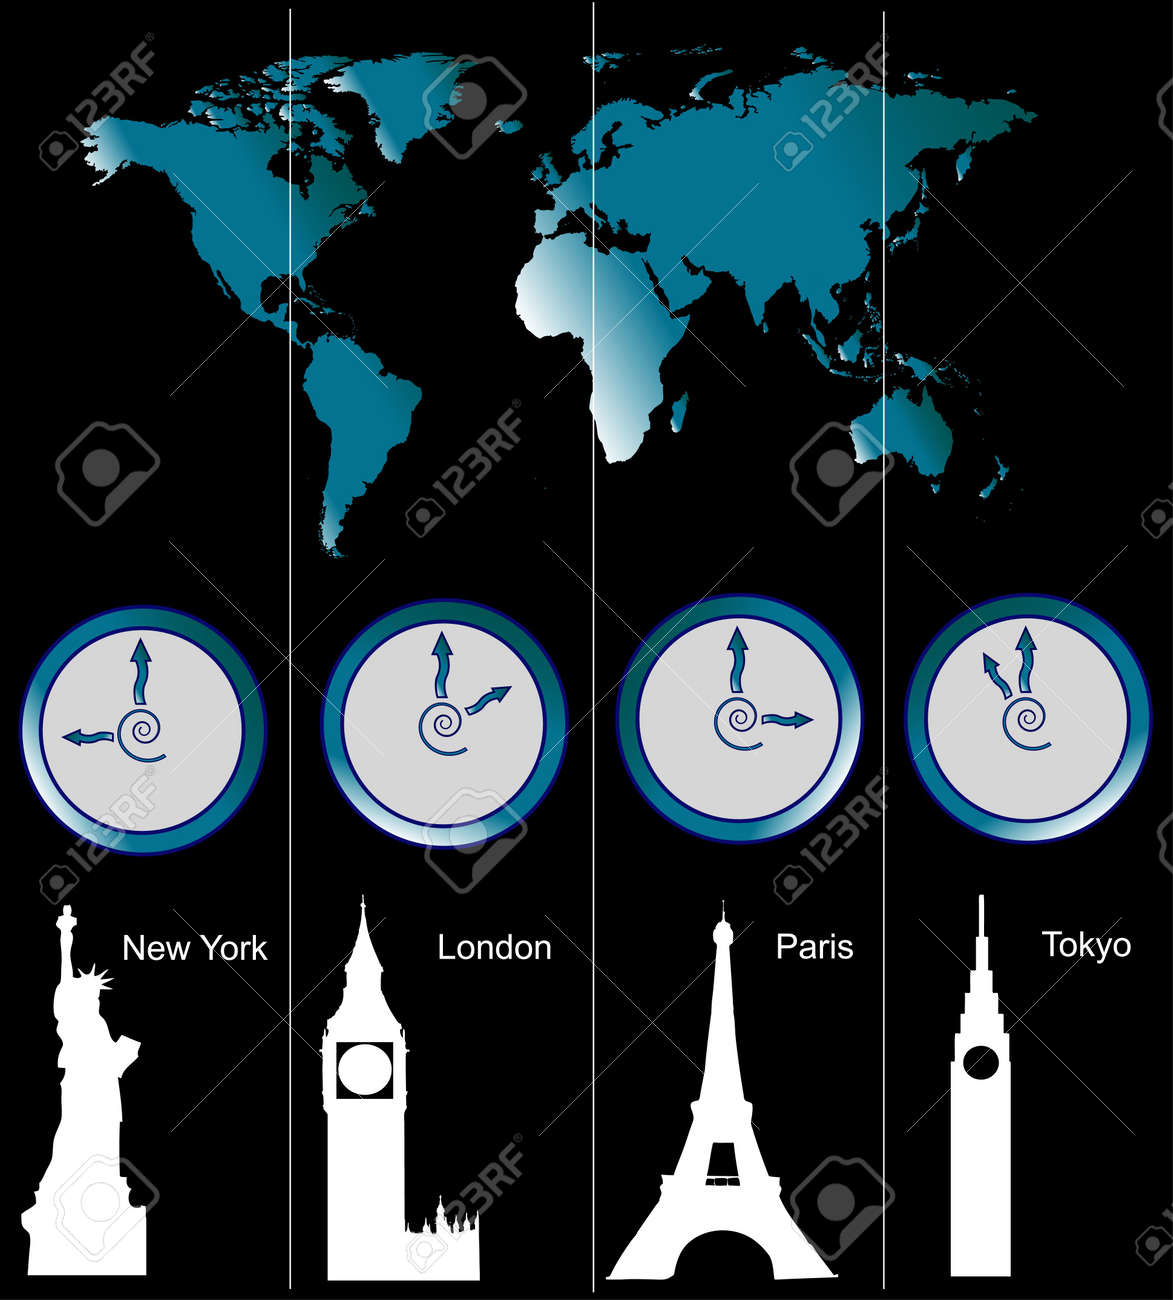 Image of a world map with clocks showing time of four cities stock image of a world map with clocks showing time of four cities new york gumiabroncs Gallery